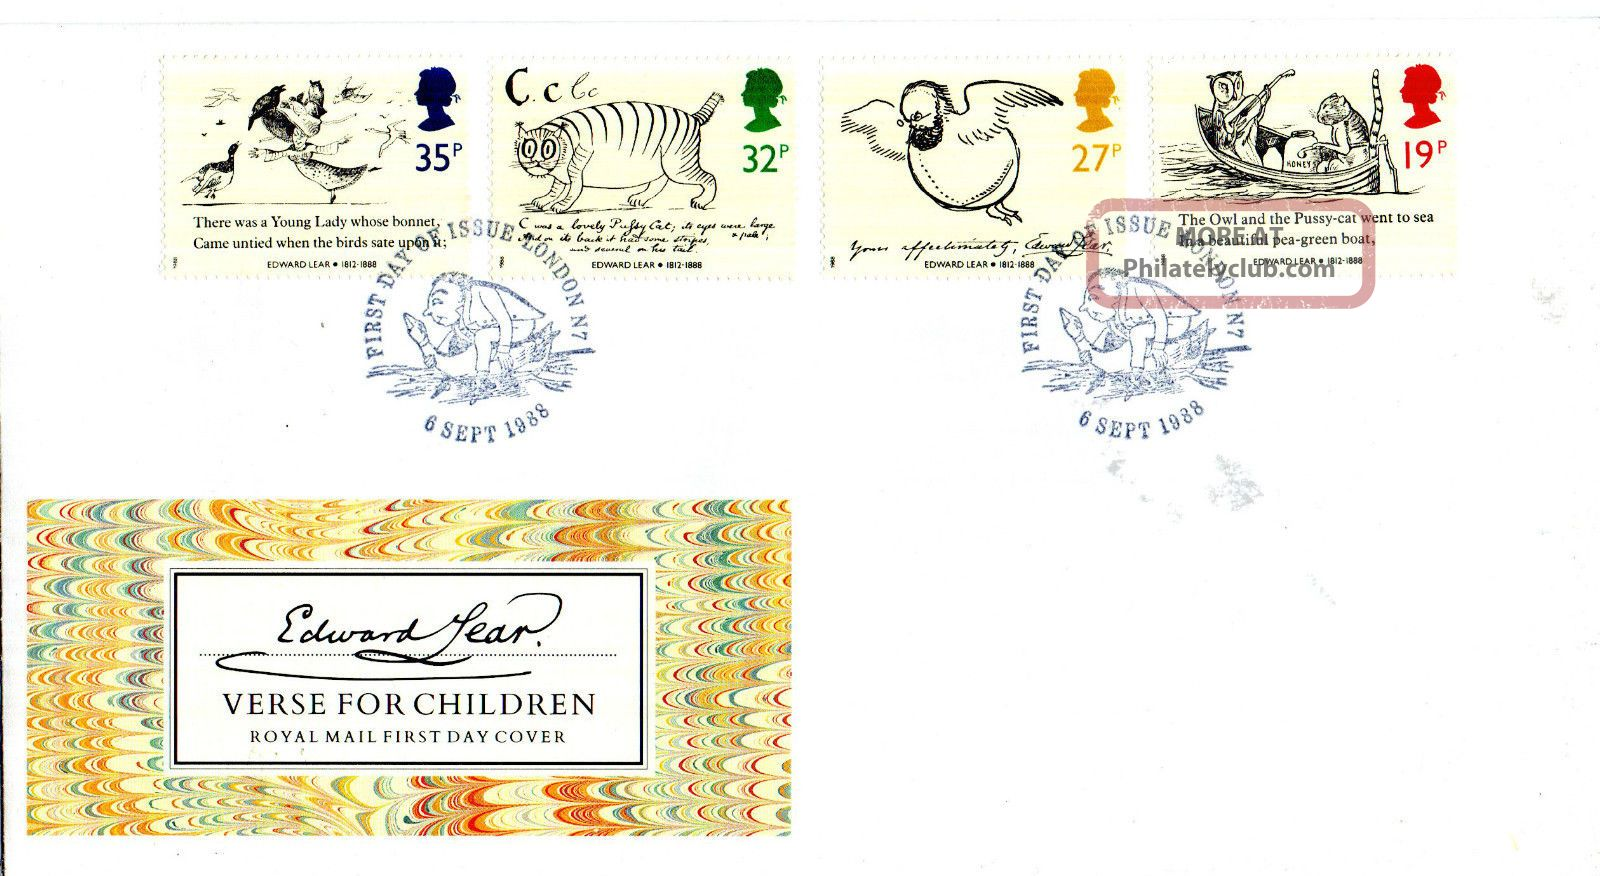 6 September 1988 Edward Lear Unadd Royal Mail First Day Cover London N7 Shs (u) Topical Stamps photo